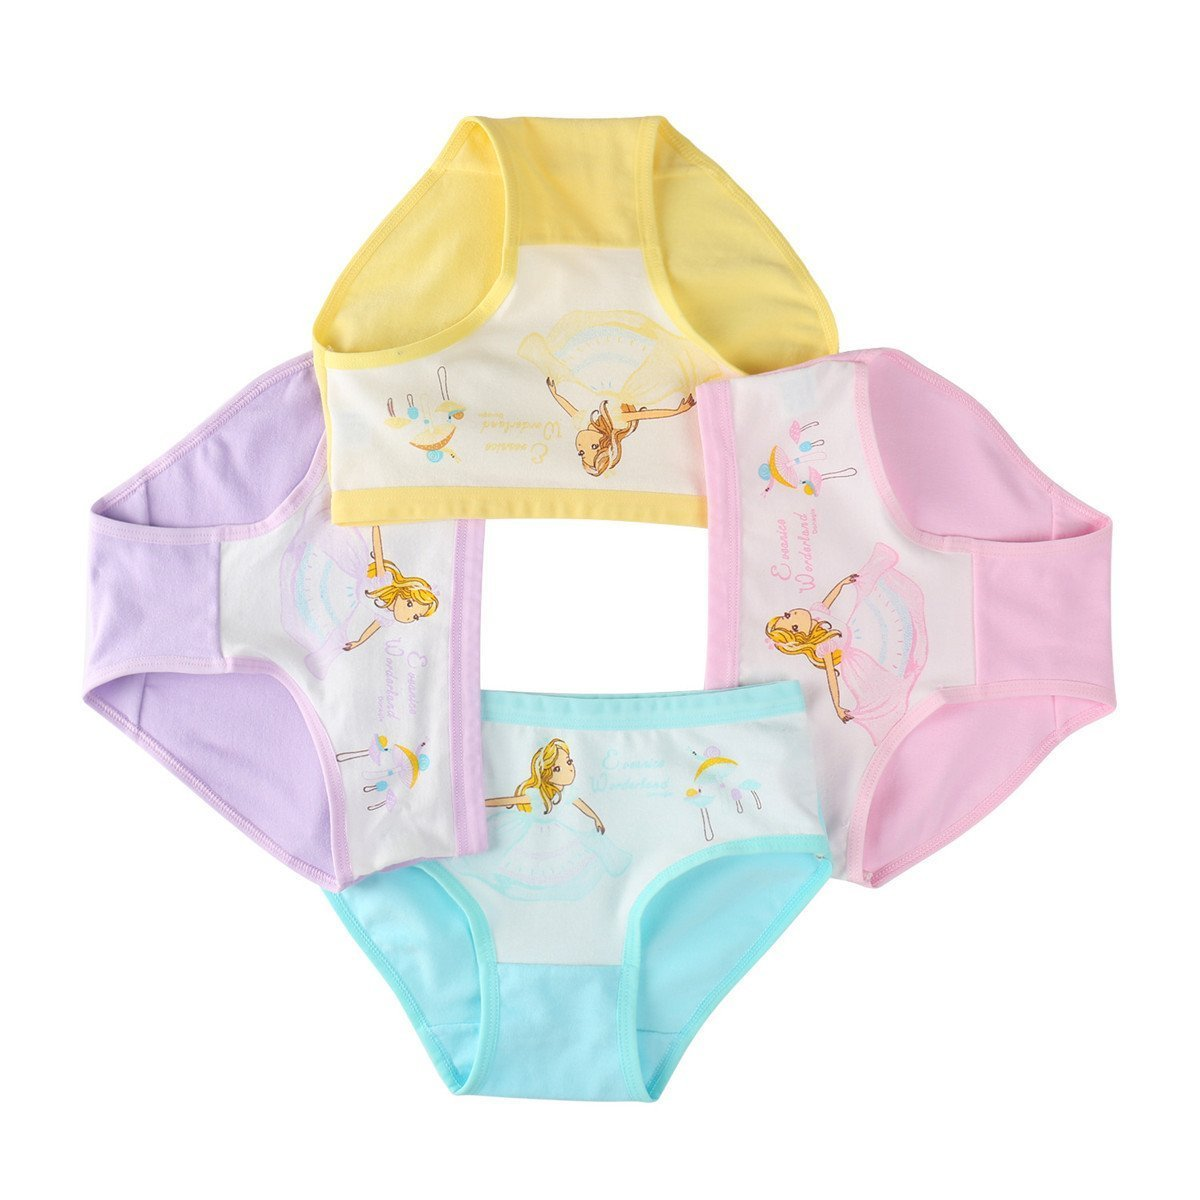 Maylife Little Girls Kids Baby Toddler 4Pcs Beauty Princess Soft Cotton Boyshort Panties Underwear